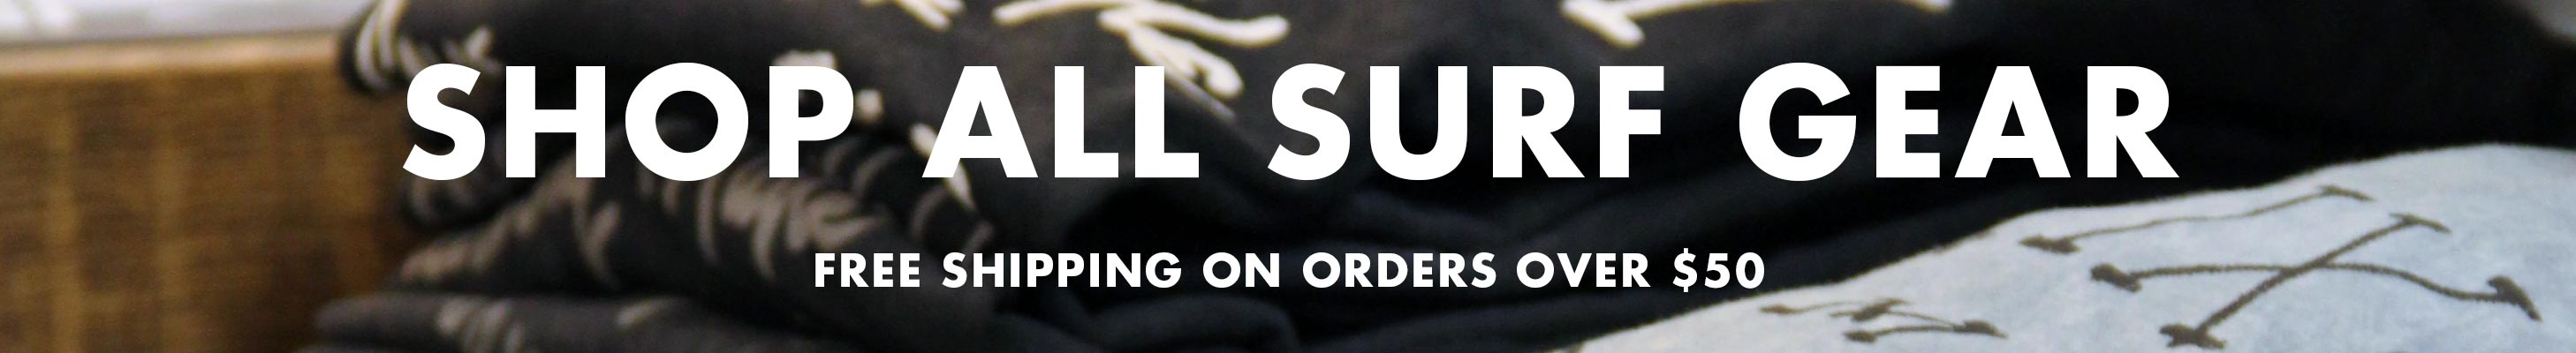 Shop All Surfgear